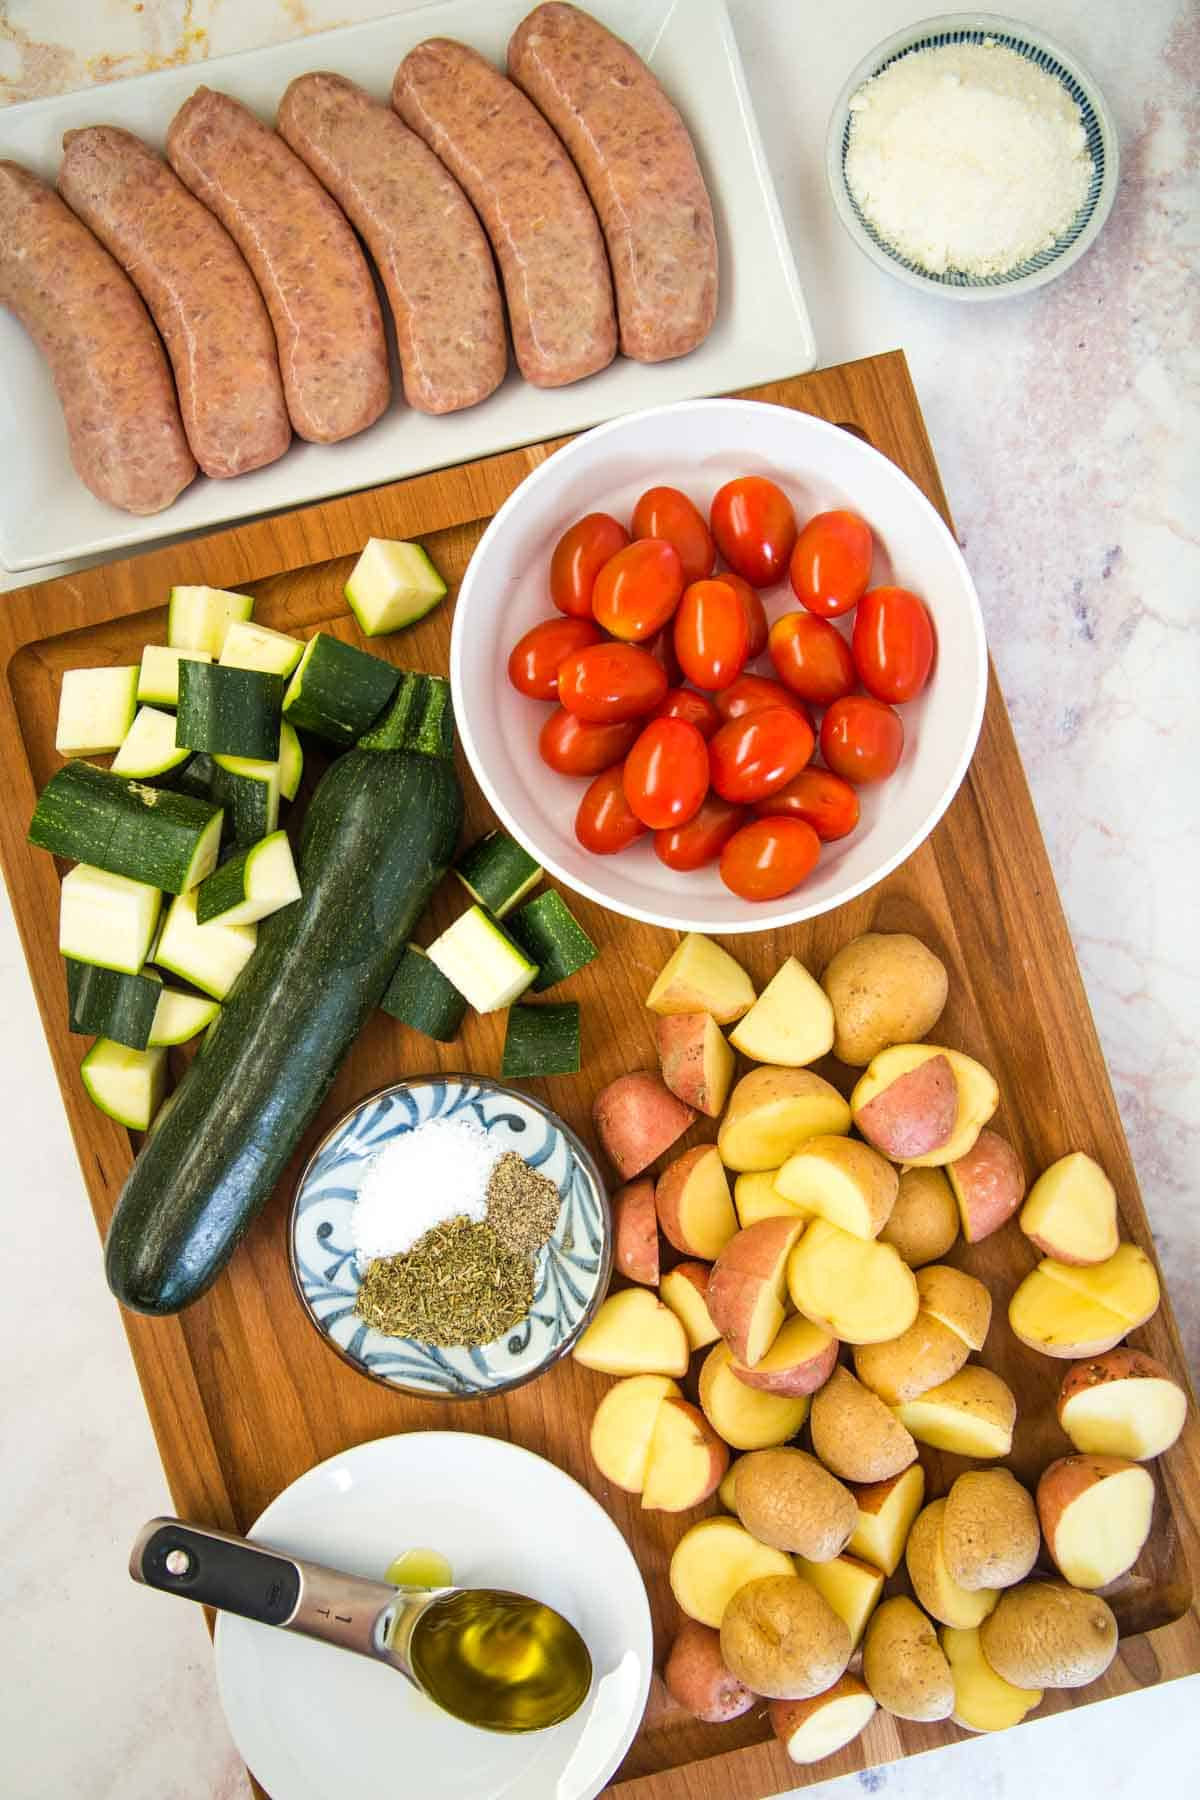 uncooked turkey sausage on a plate next to a cutting board with chopped potatoes and zucchini, bowl of grape tomatoes, parmesan cheese, and seasonings, and a spoon of olive oil